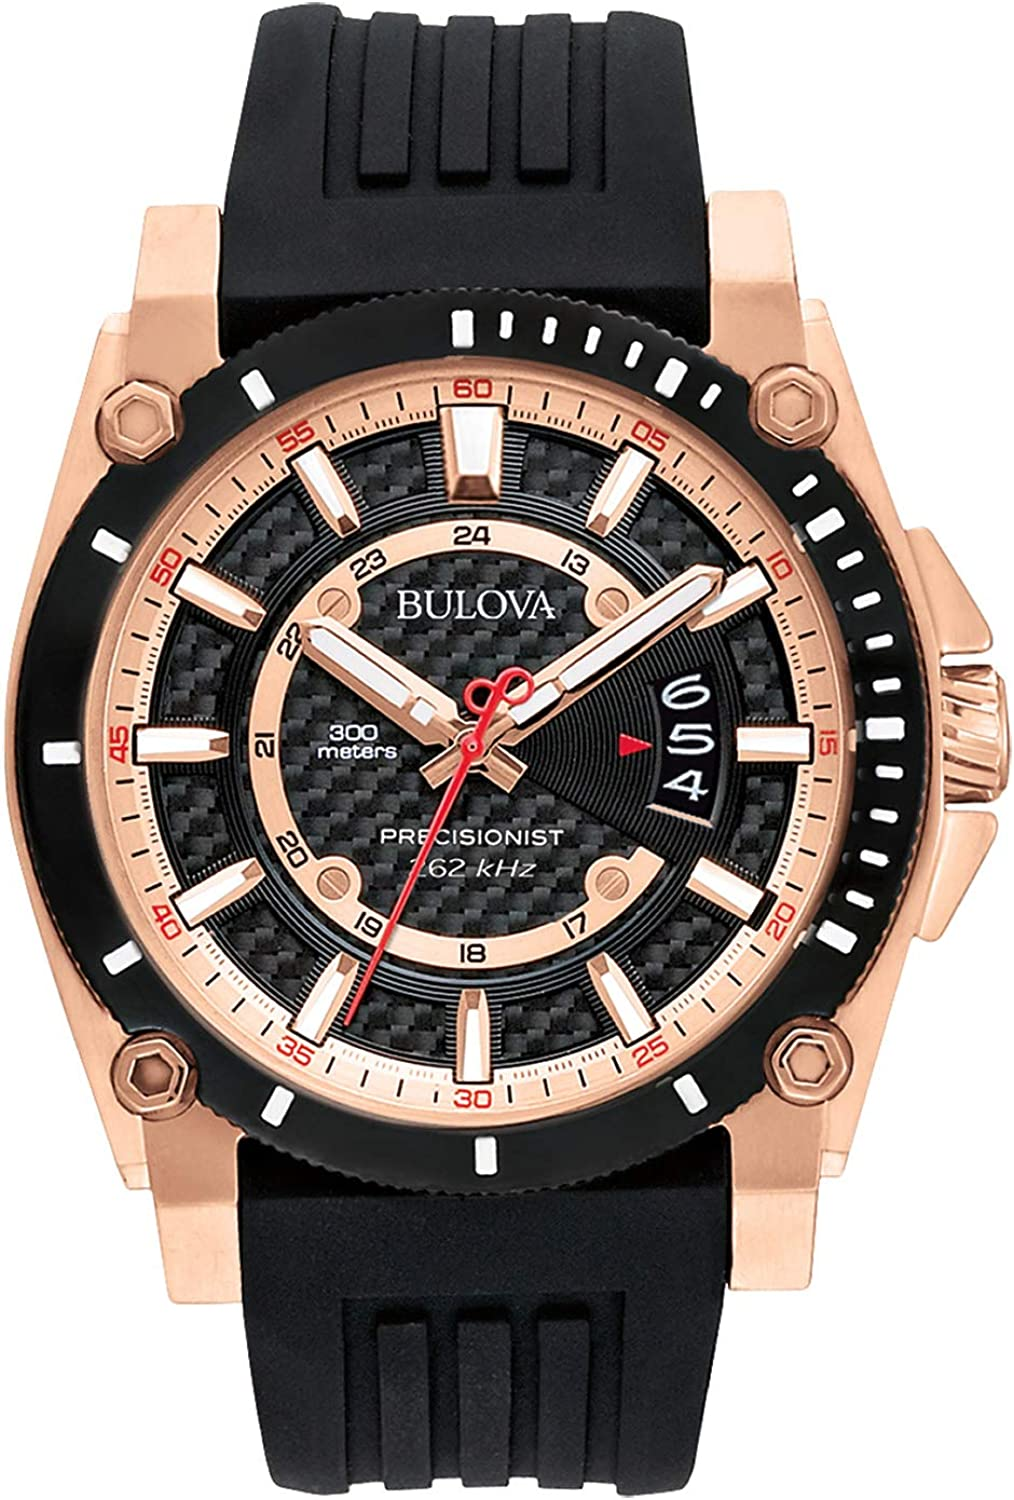 Amazon.com: Bulova Men's 98B152 Precisionist Analog Chronograph Black Watch: Bulova: Watches